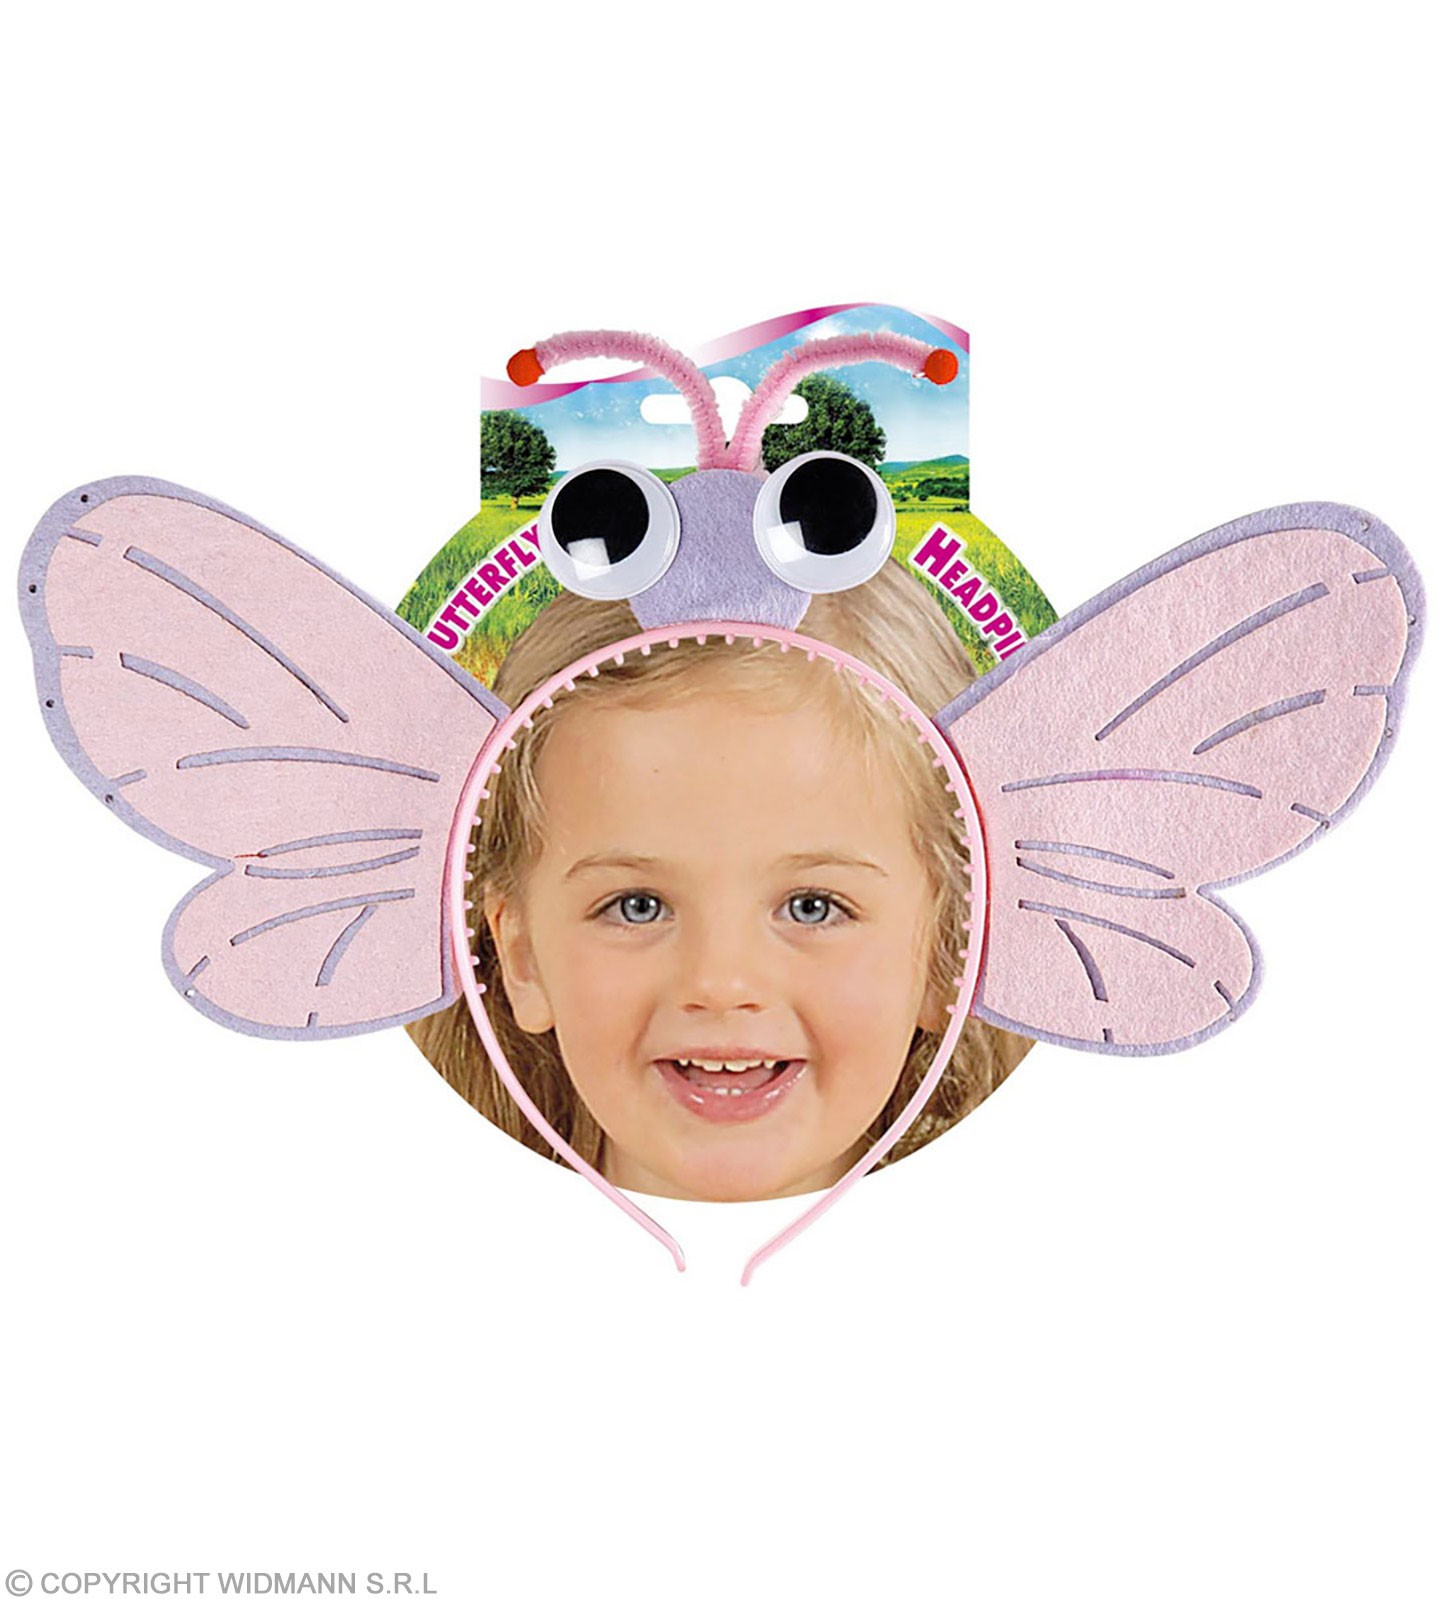 Butterfly Headpieces Accessories